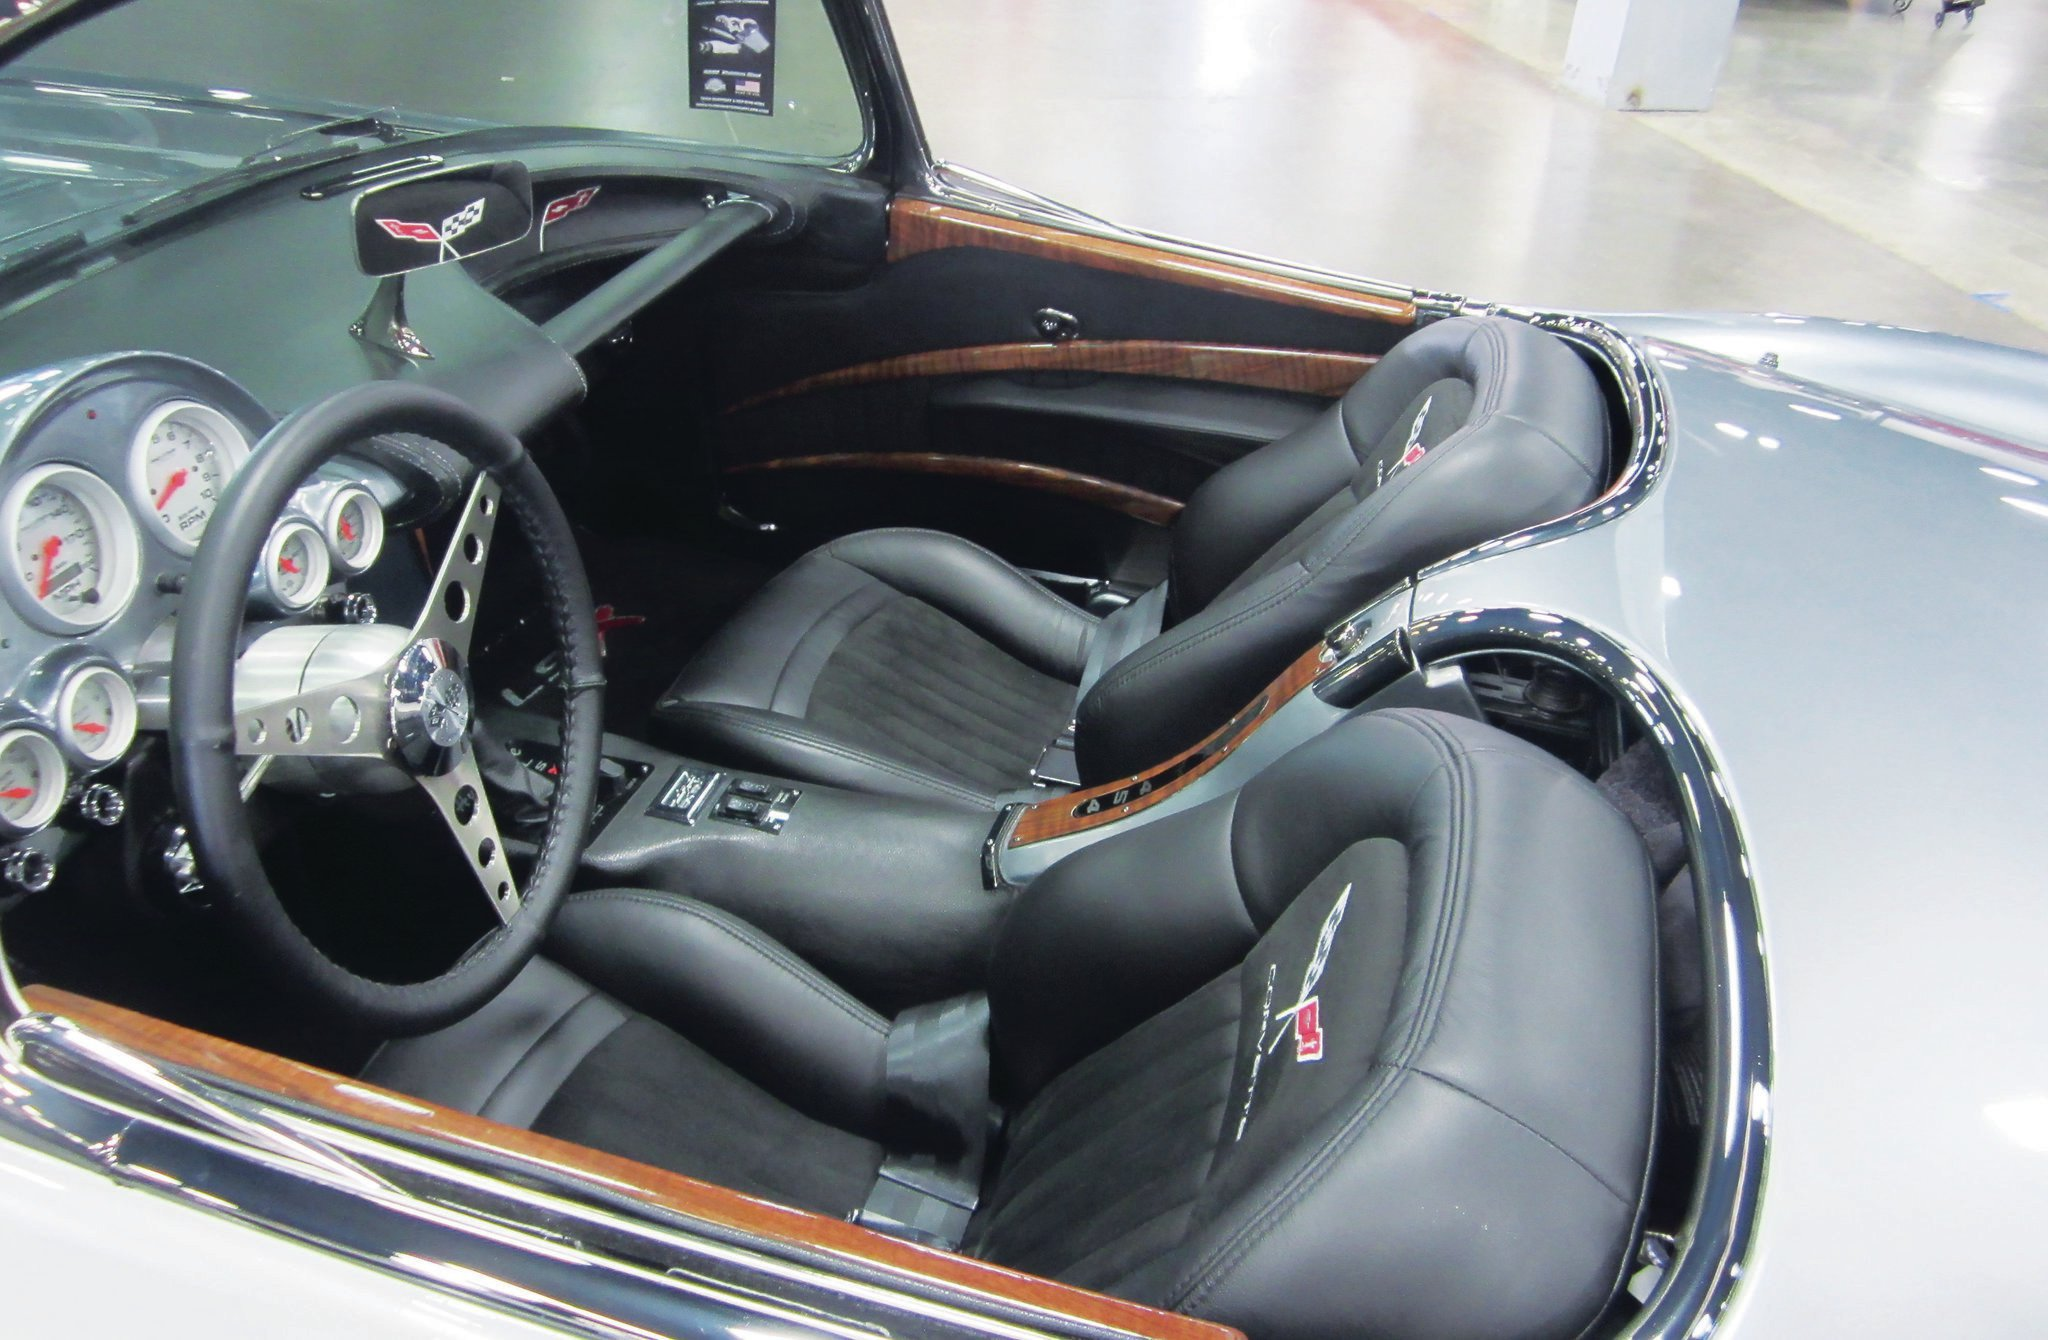 Here's the finished interior with wood accents and nice integration of classic Corvette with contemporary flair.